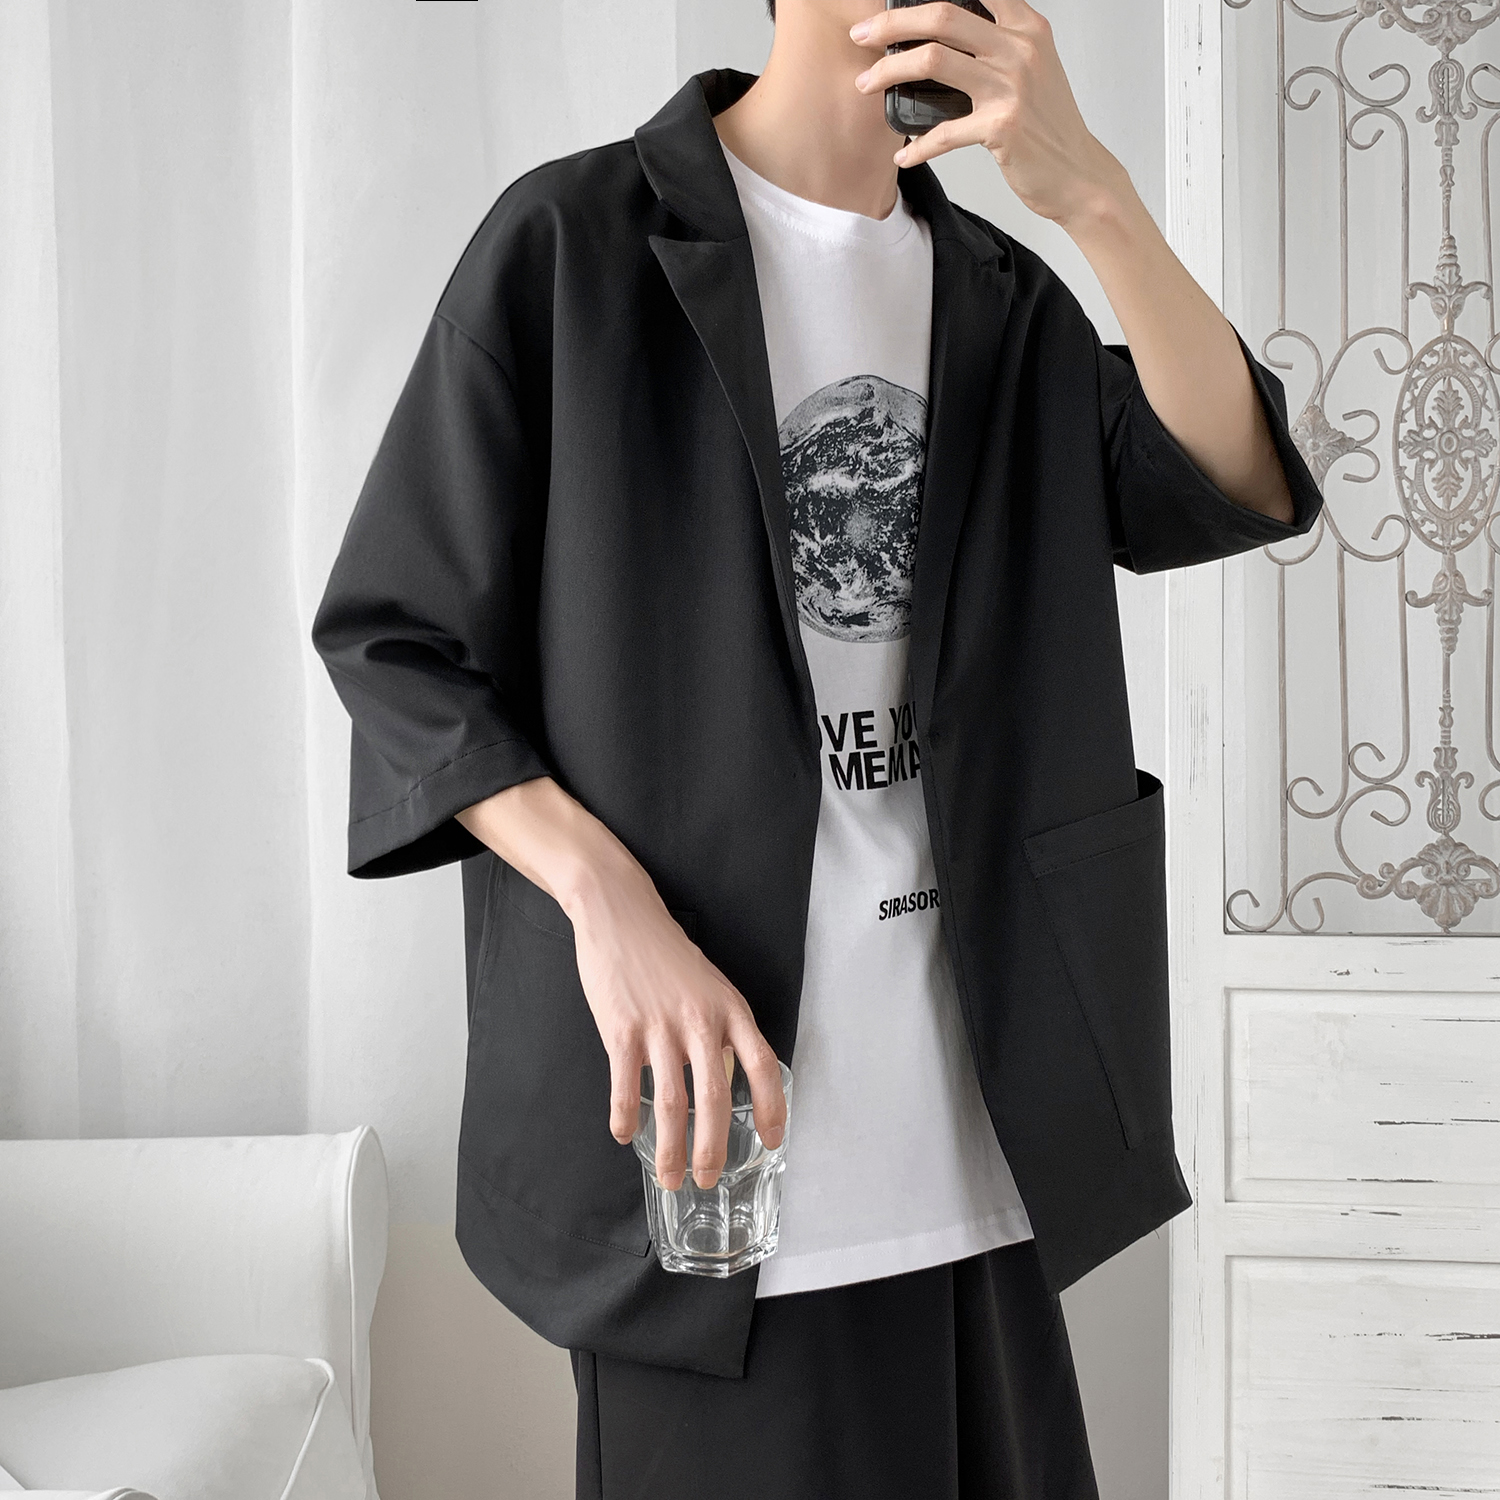 2019 New Korea Style Leisure Designer Fashion Women Men Blazer Homme Jacket Half Sleeve Oversize Casual Suit